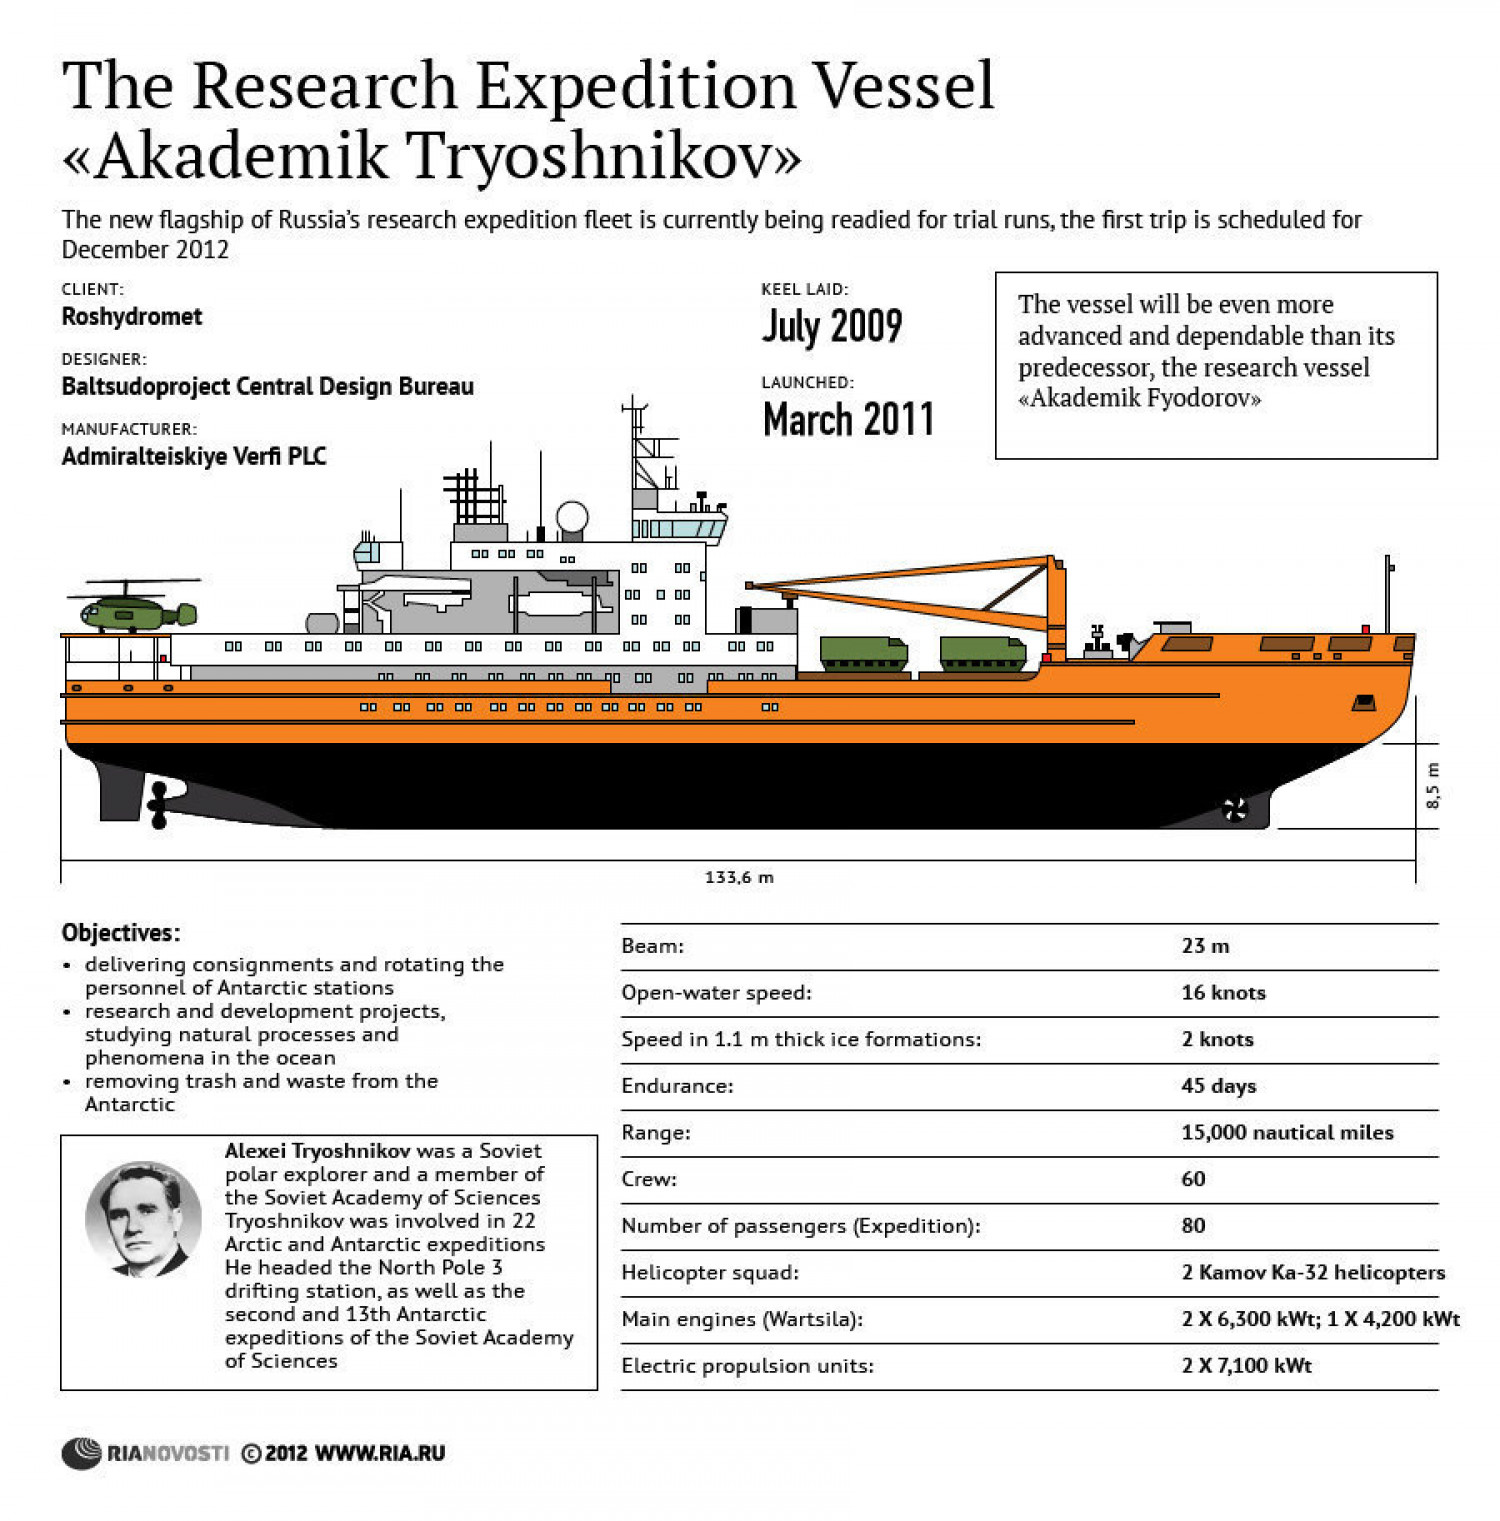 The Research Expedition Vessel Infographic